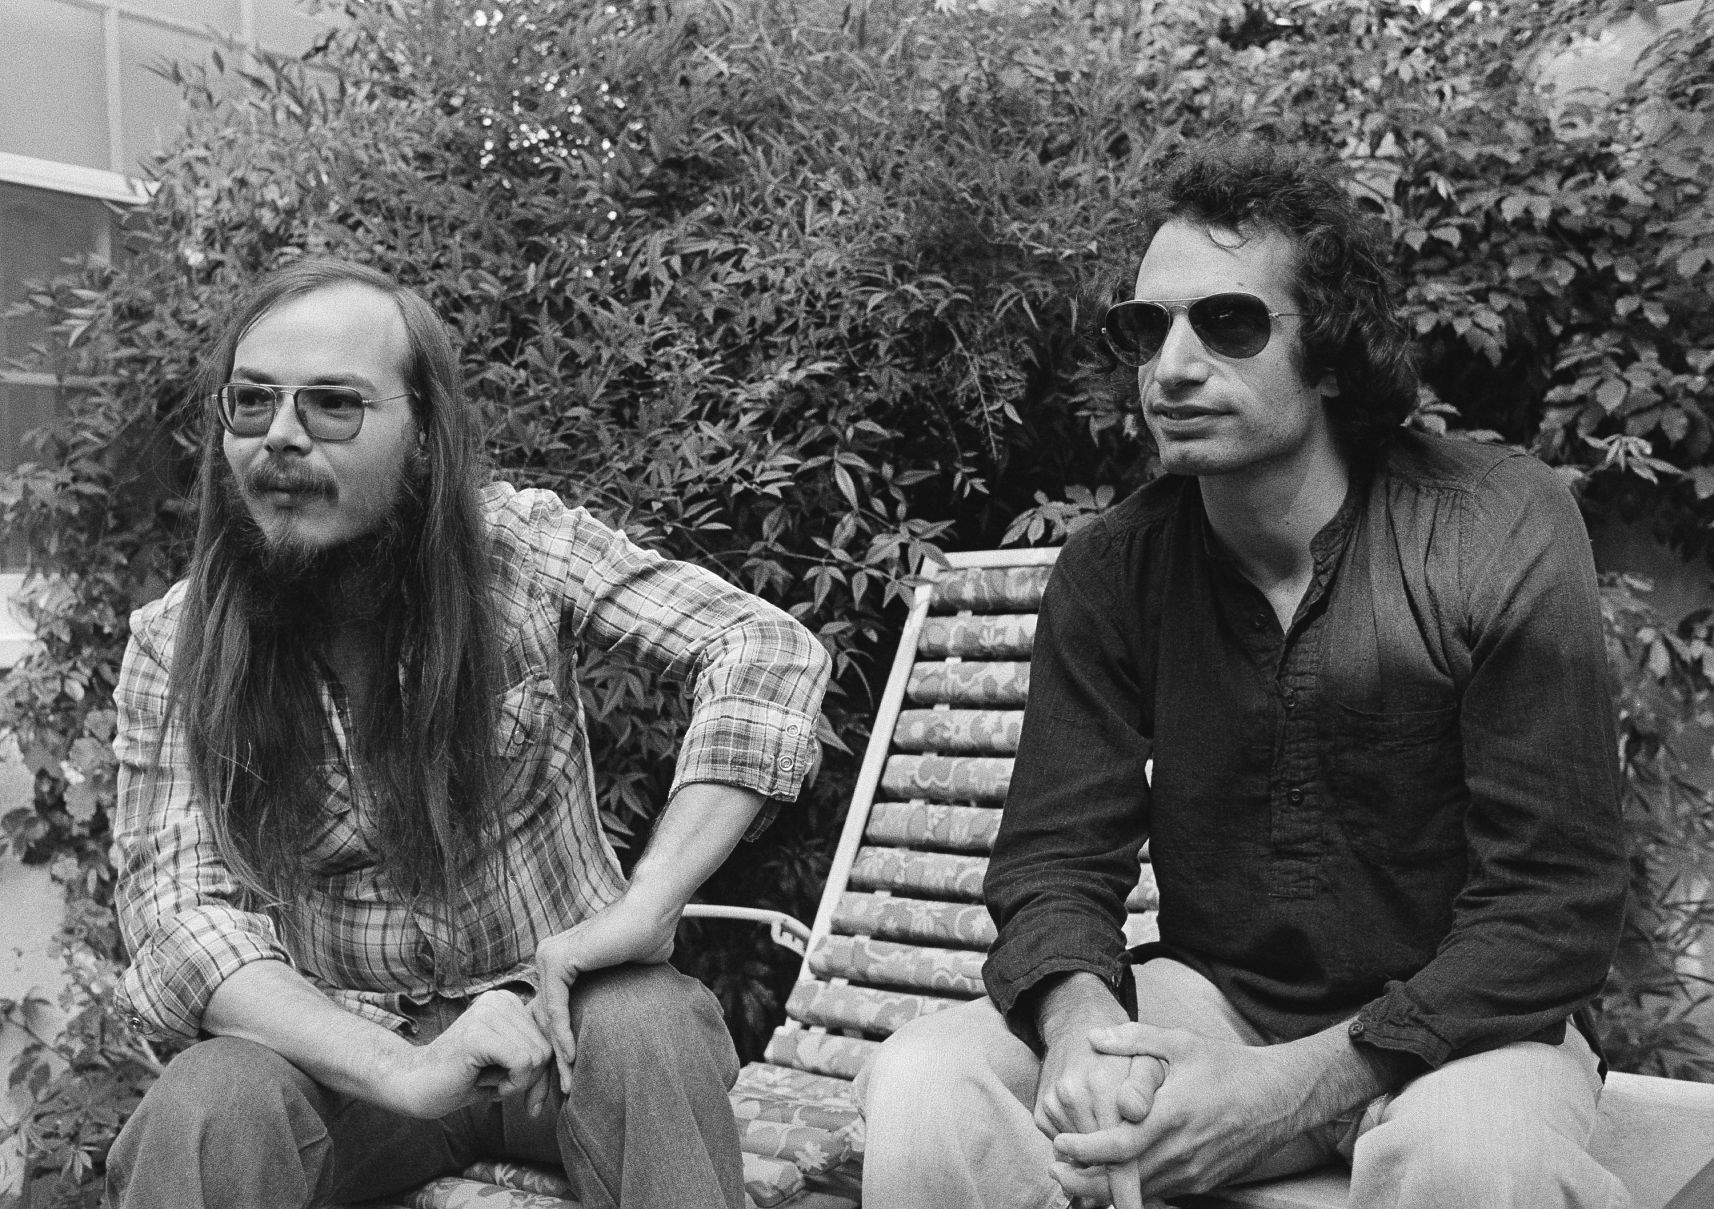 Obituary: Walter Becker, musician who co-founded Steely Dan